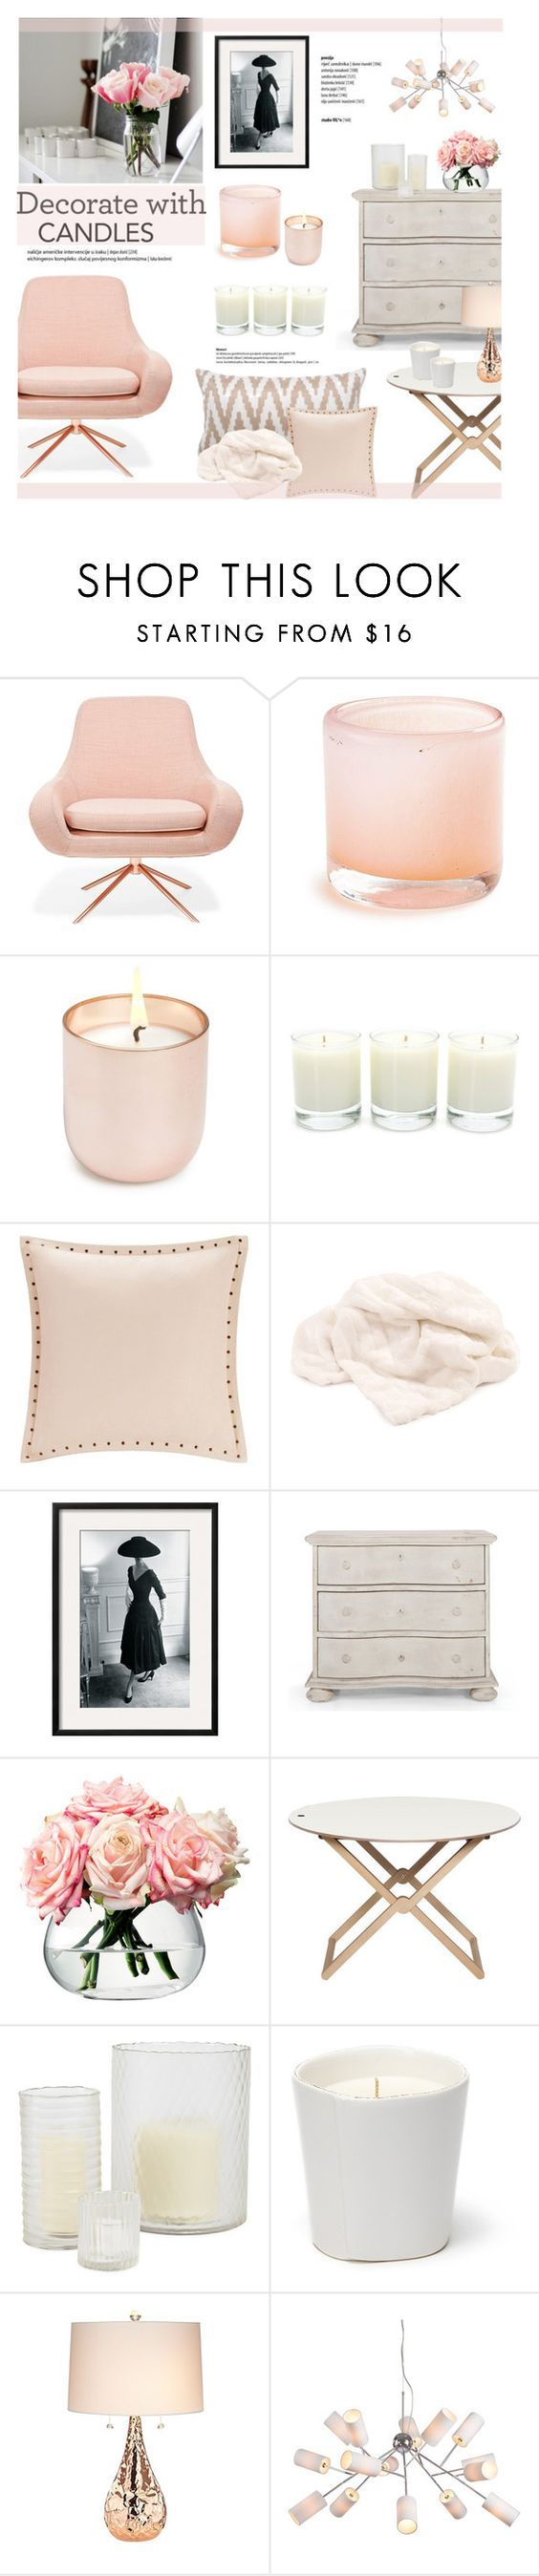 Decorate with Candles by helenevlacho on Polyvore featuring interior, interiors, interior design, home, home decor, interior decorating, Jonathan Adler, Antica Farmacista, Madison Park and Flamant